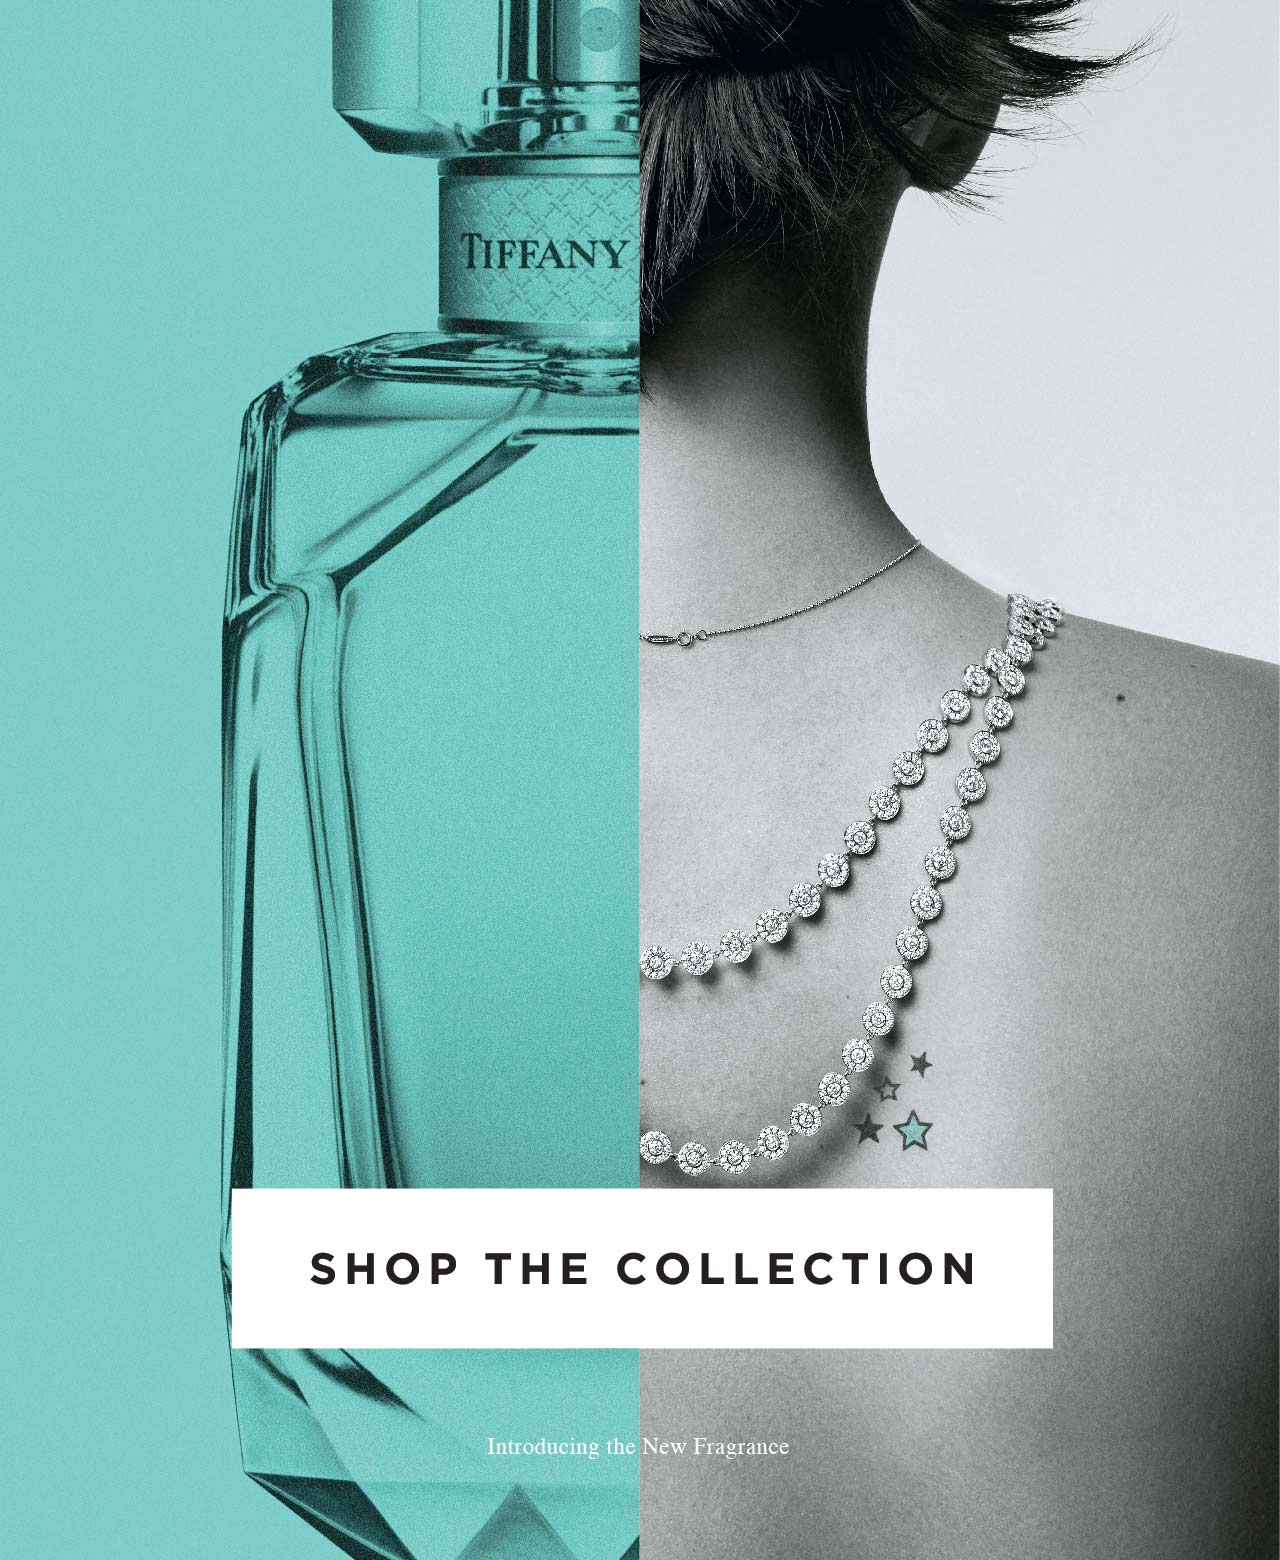 Tiffany & Co. Introducing the New Fragrance